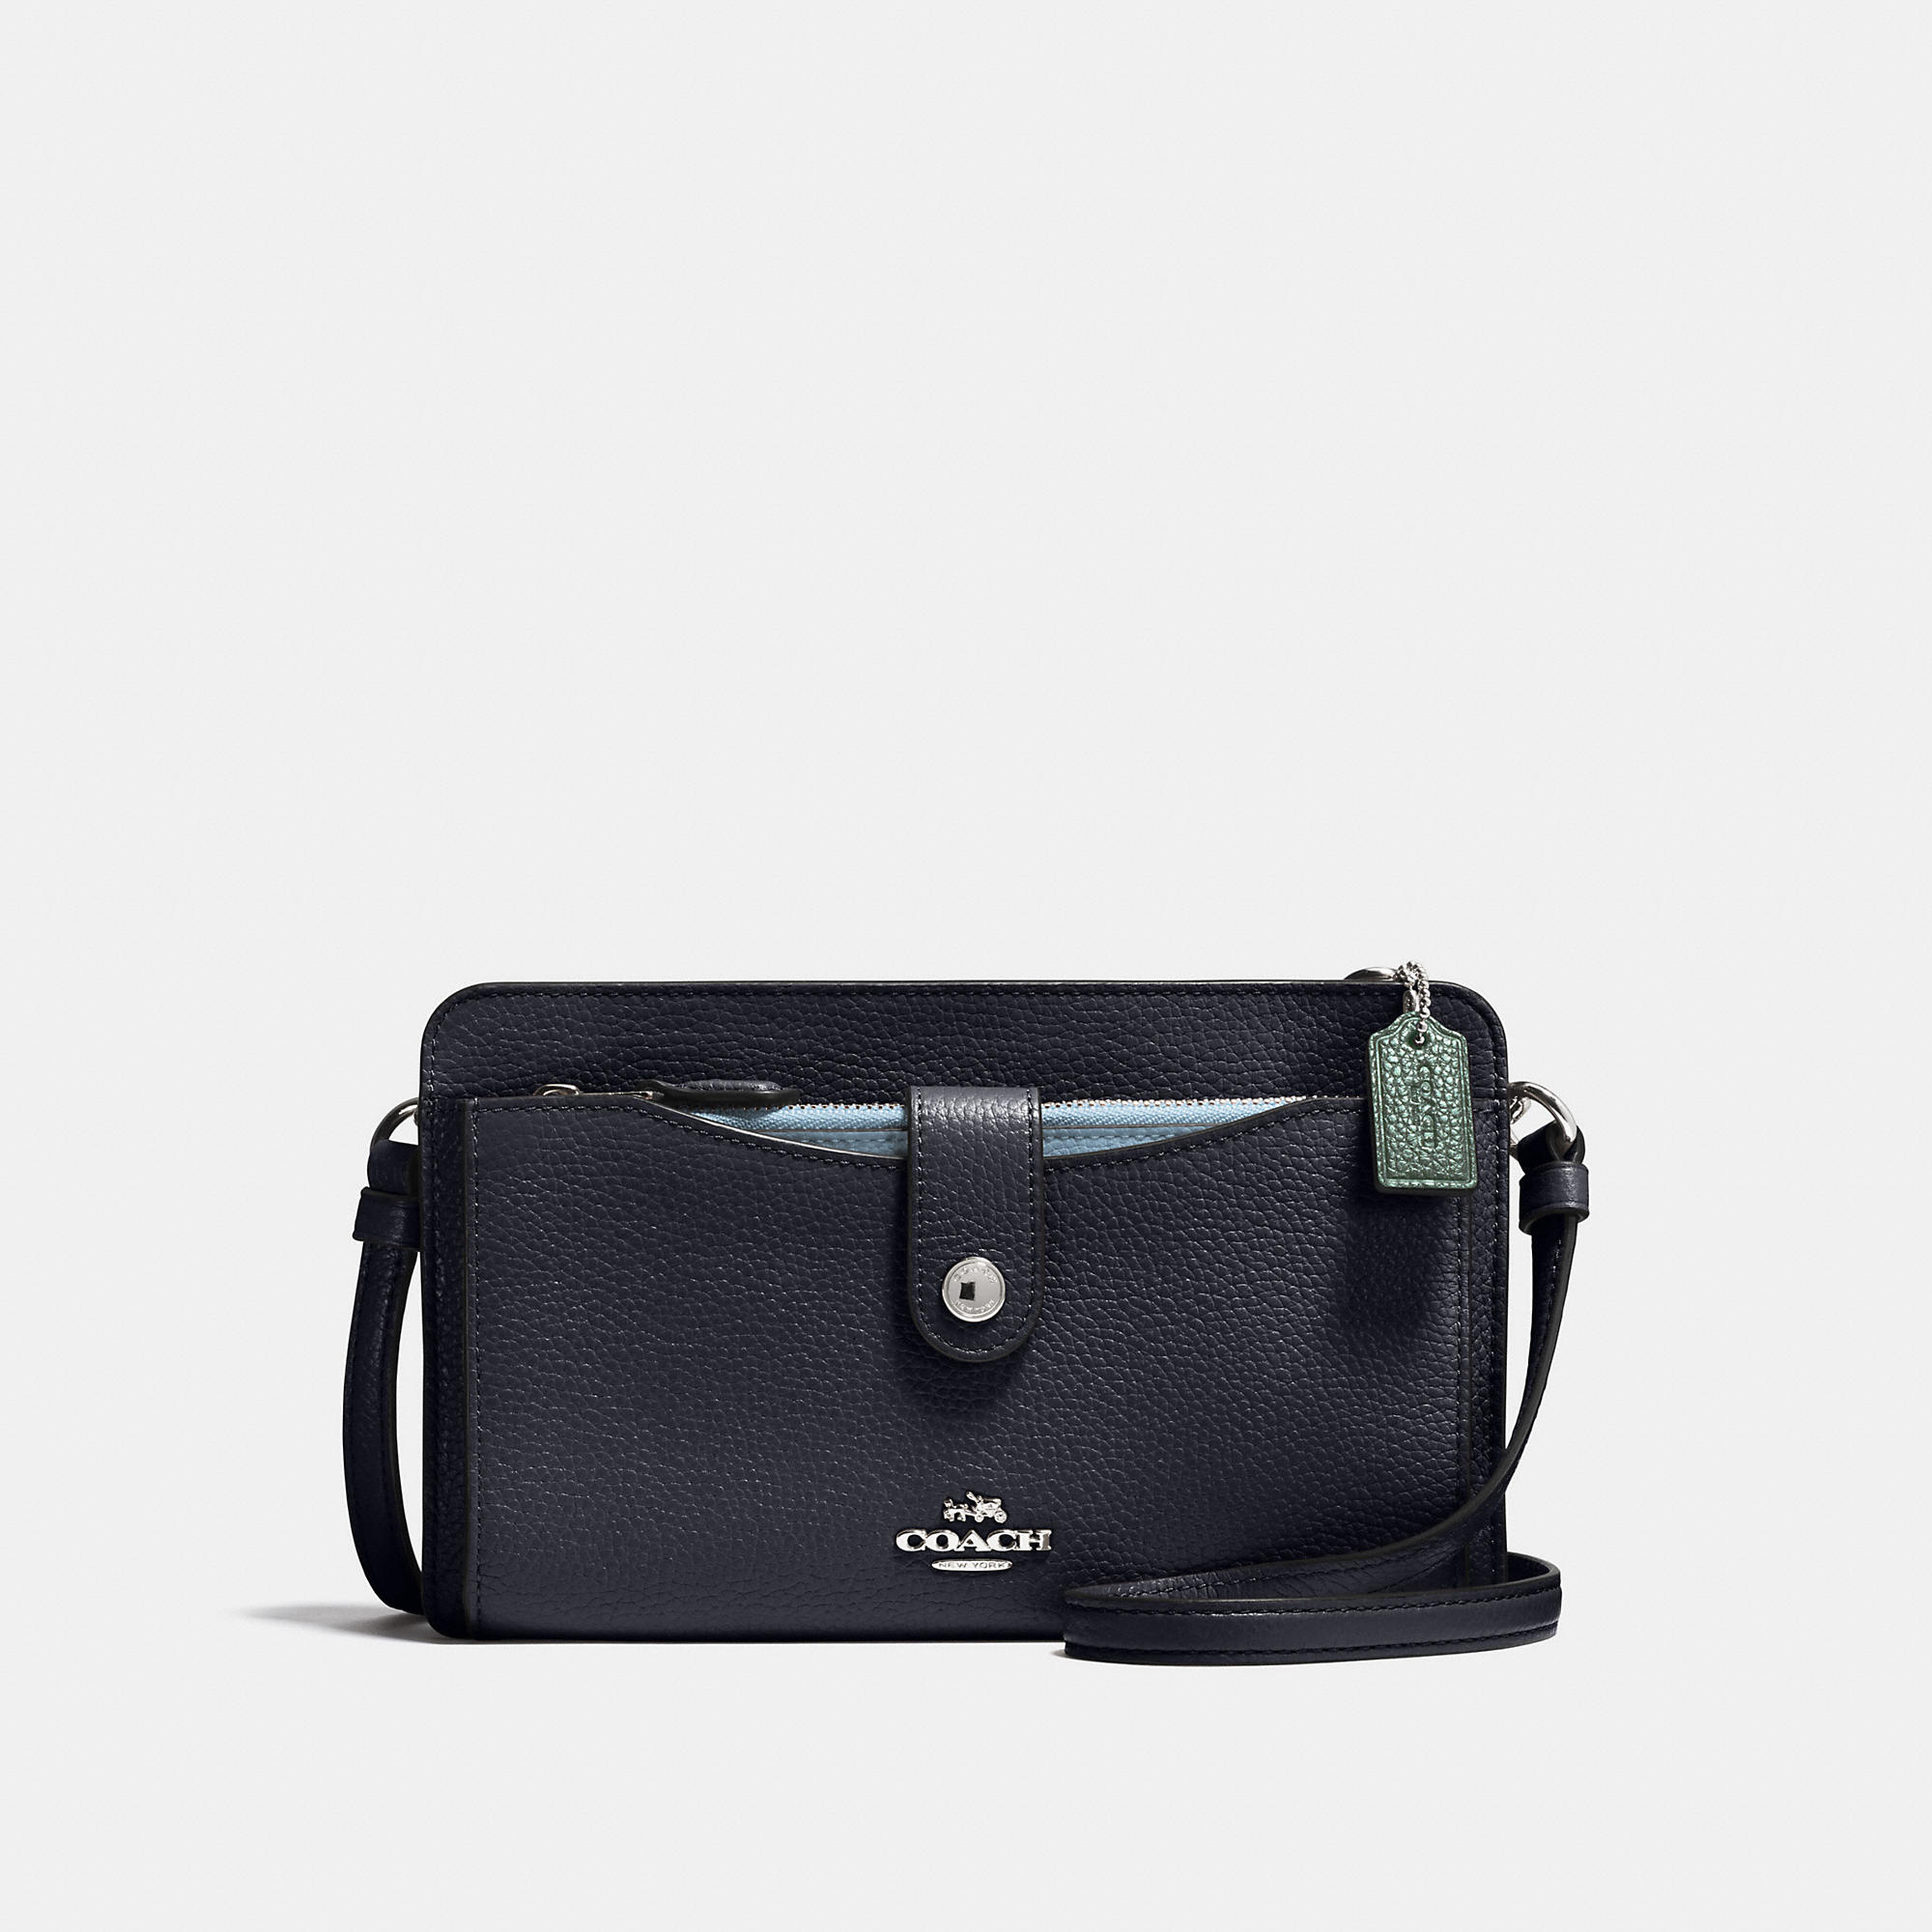 Coach Pop-up Messenger In Colorblock Leather